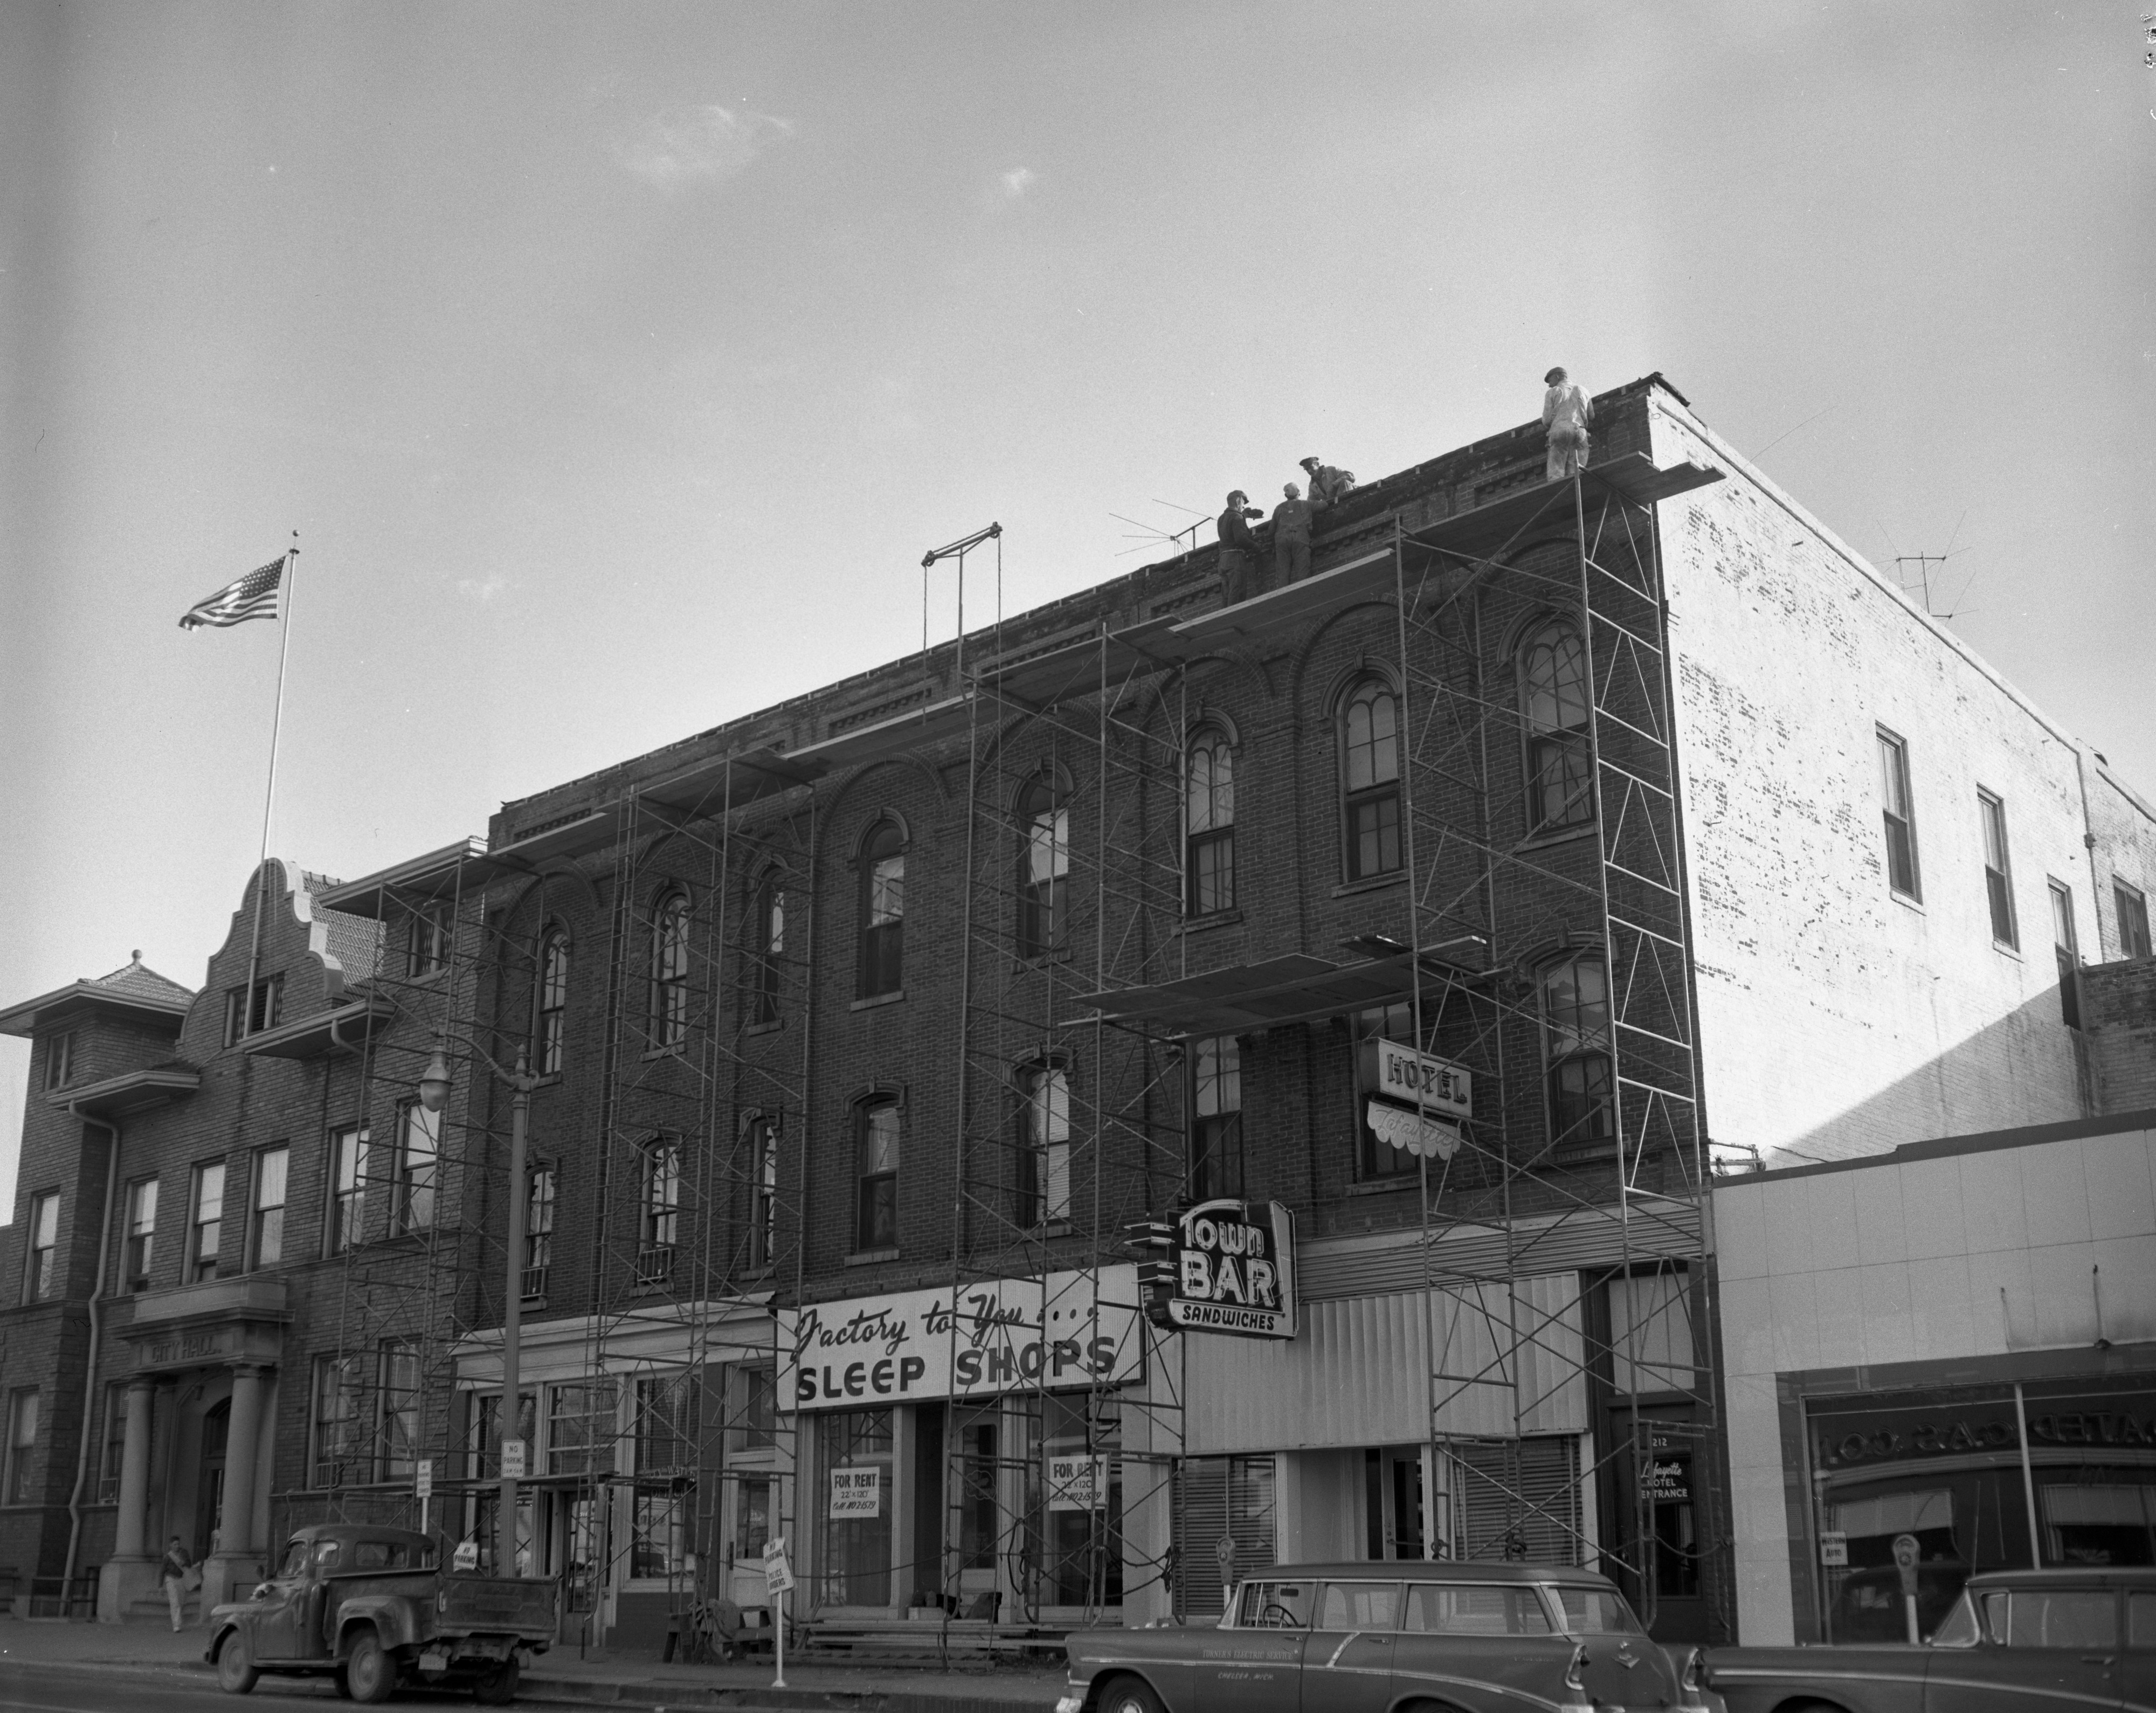 Faulty cornice removed from city building, November 1958 image